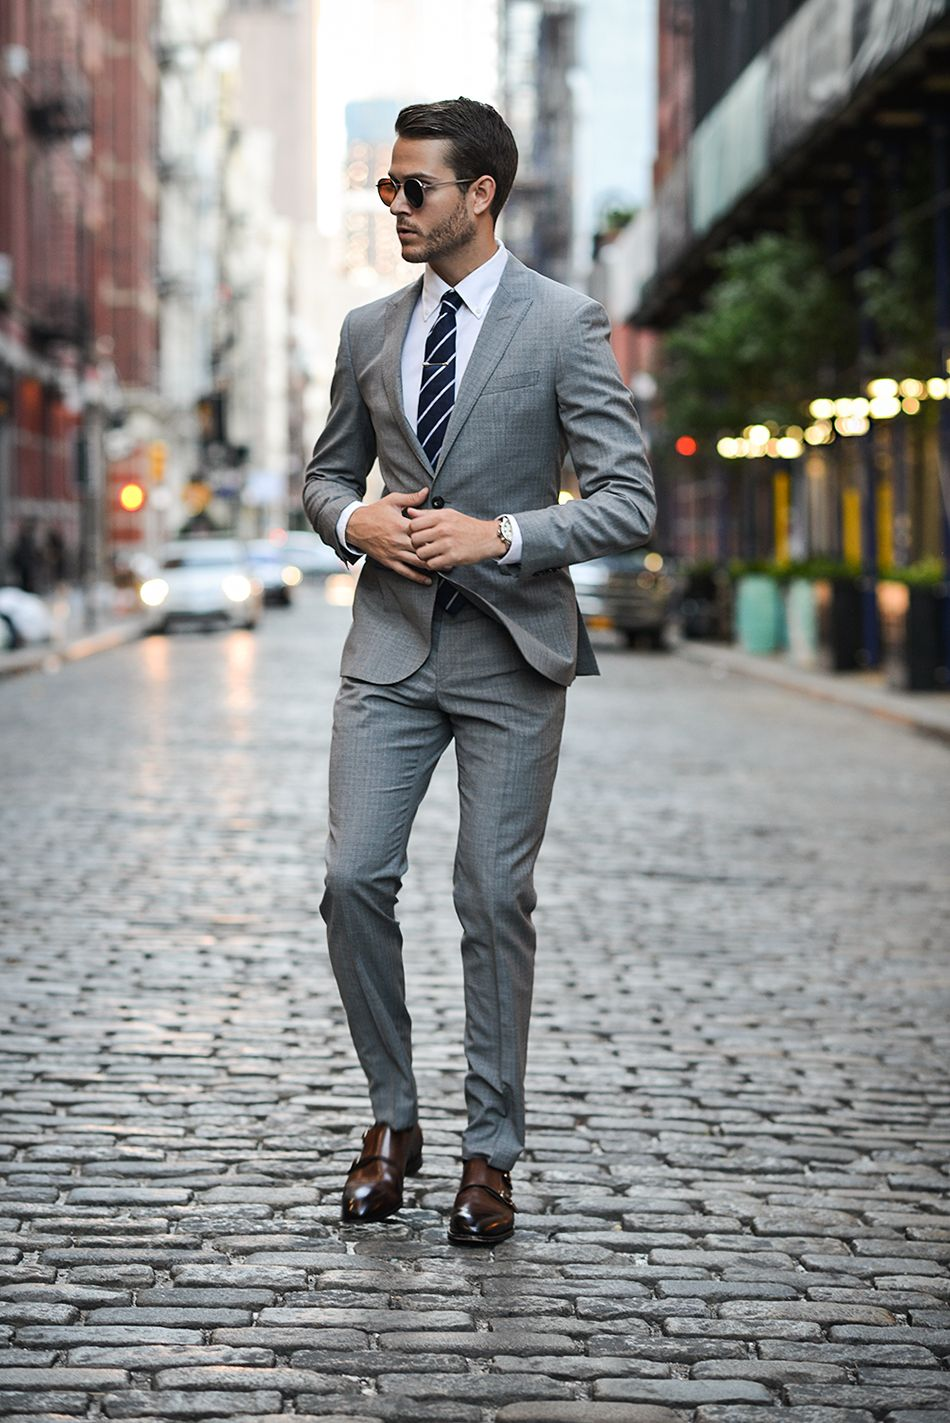 Man Of Few Words Tommy Hilfiger Men 39 S Fashion And Man Style